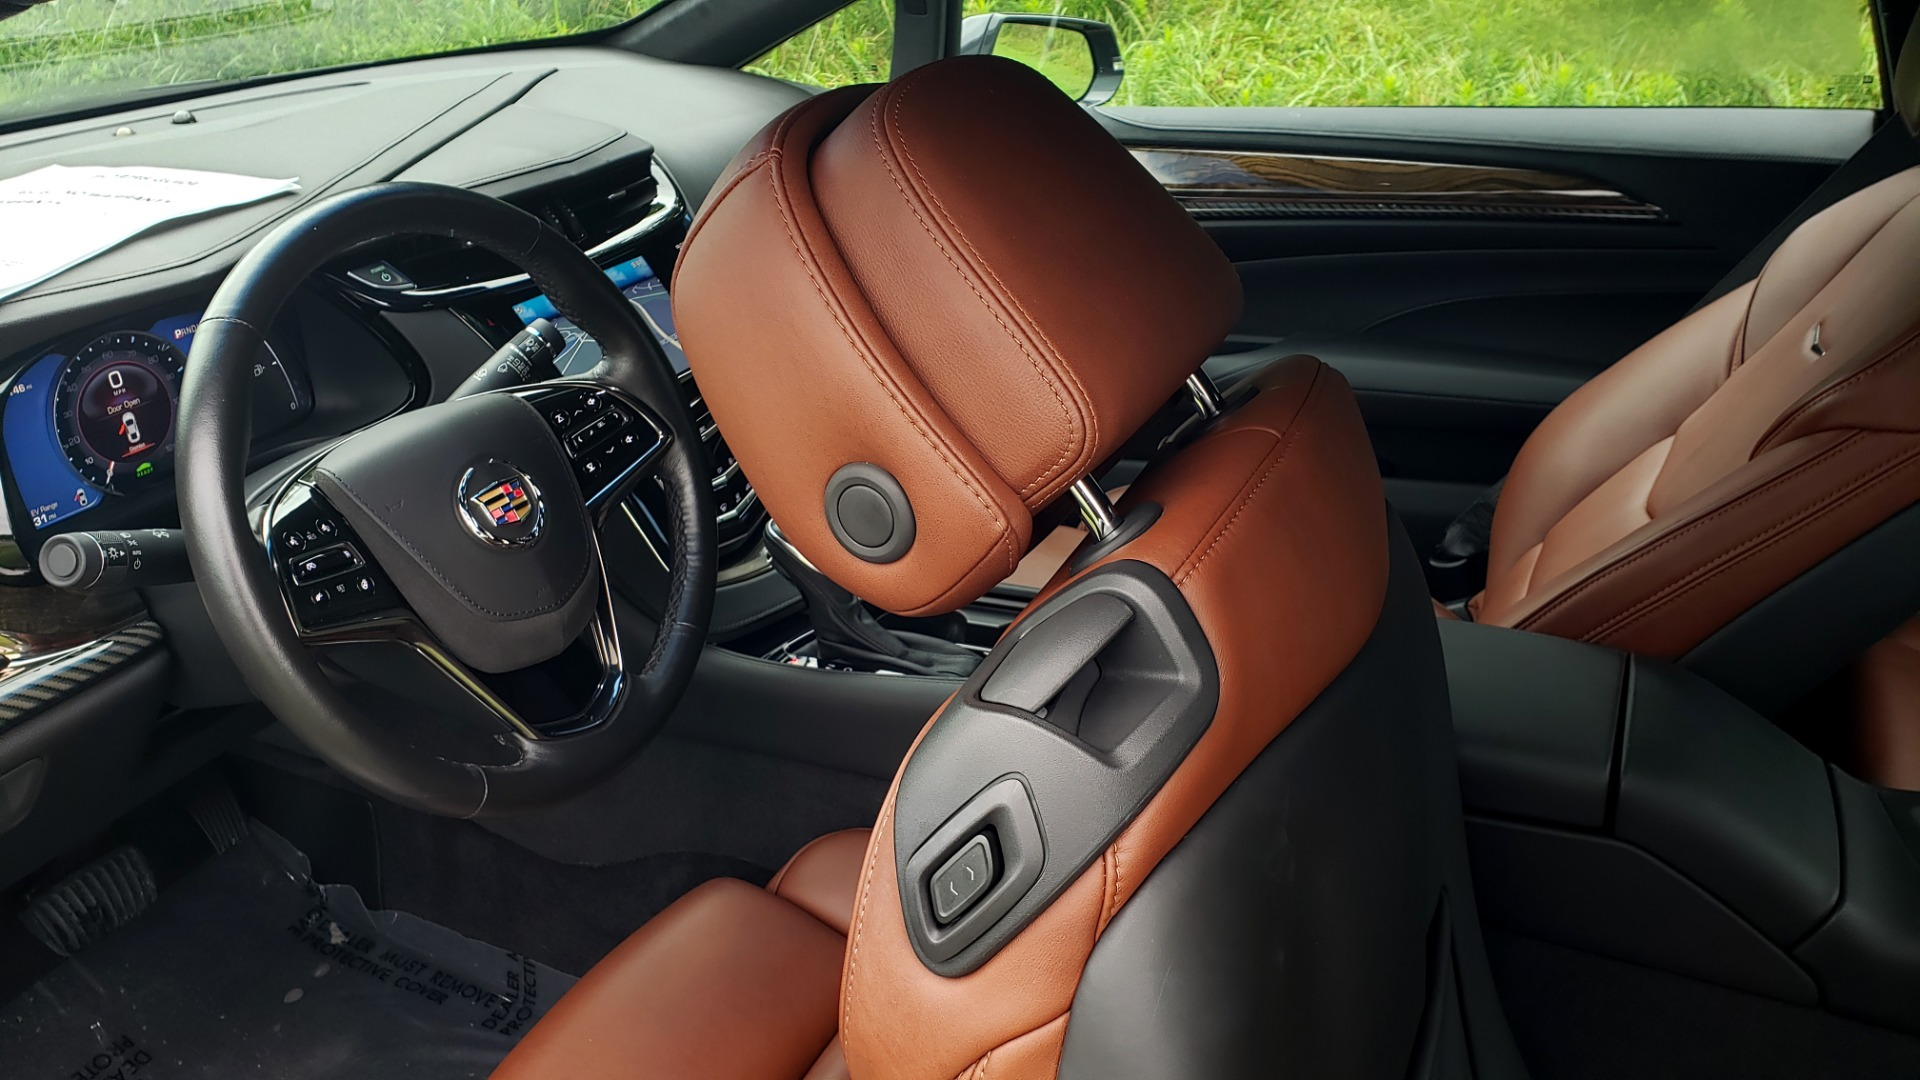 Used 2014 Cadillac ELR 2DR COUPE / HYBRID / NAV / BOSE / HEATED SEATS / REARVIEW for sale $34,000 at Formula Imports in Charlotte NC 28227 49